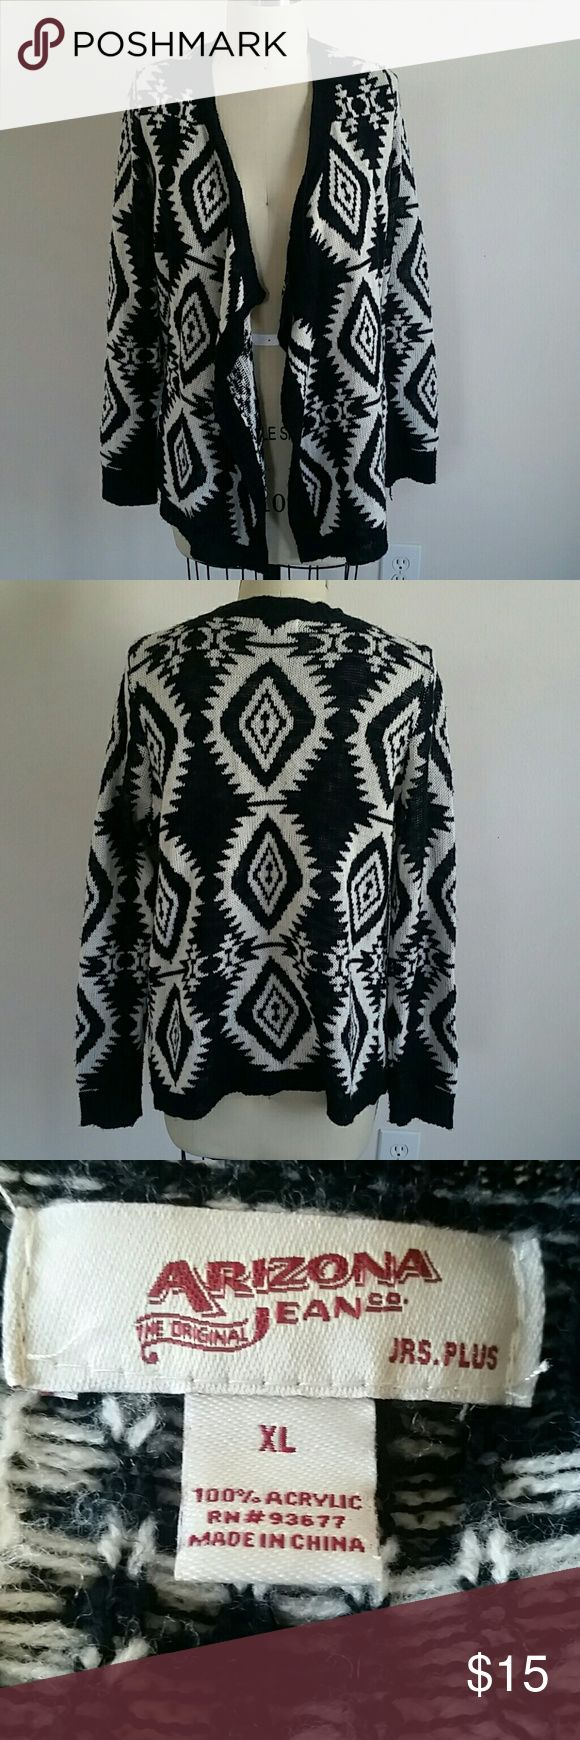 Tribal Print Cardigan NWOT Chic black and white tribal print cardigan! Super cute and great for cold weather! never been worn before so it is in great condition! Arizona Jean Company Sweaters Cardigans